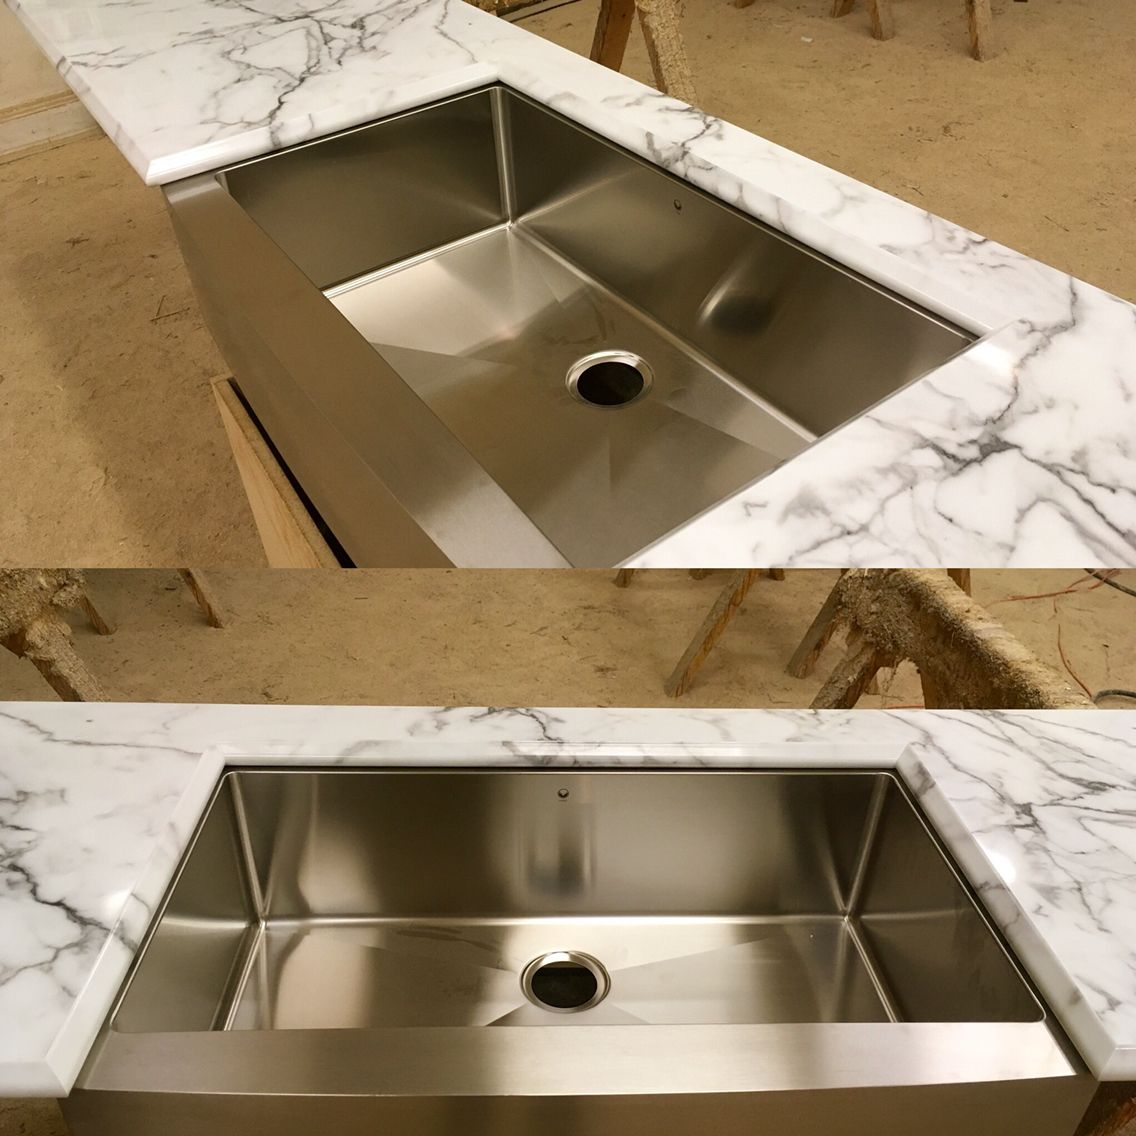 Beautiful Calcutta Marble High Gloss Laminate Countertop With A Vigo Stainless Steel Farm Sink Laminate Countertops Countertops Replacing Kitchen Countertops